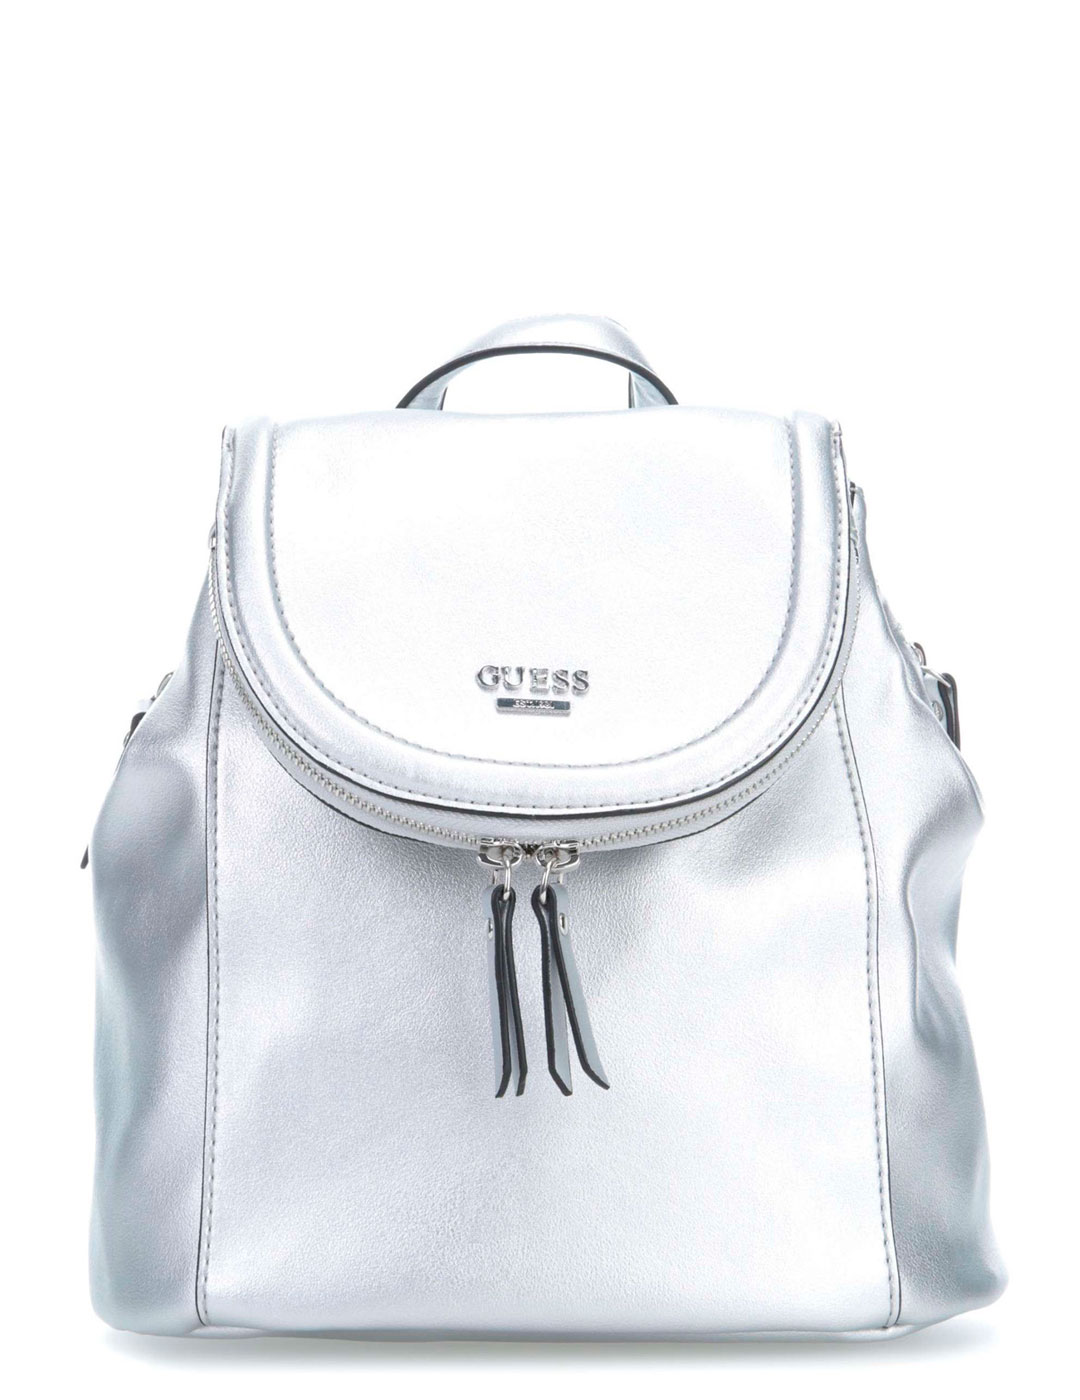 Us146 Guess Suppliers 46Buy Store Buylevard Women Silver Reliable On Backpack From b7yvf6IYg